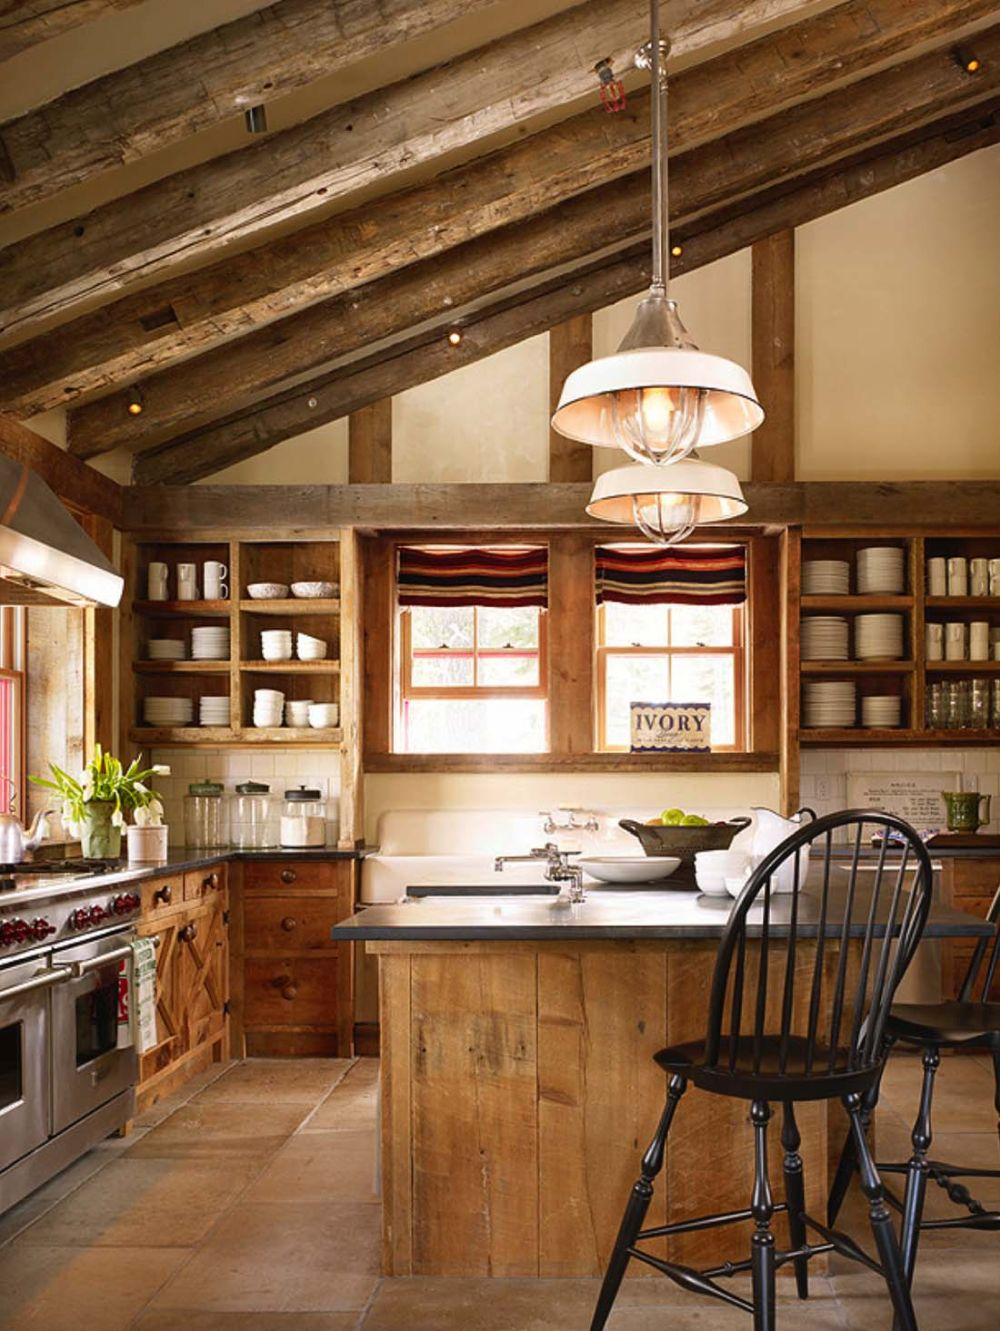 All the salvaged wood used throughout the cabin creates a strong sense of belonging and gives the rooms a lot of character